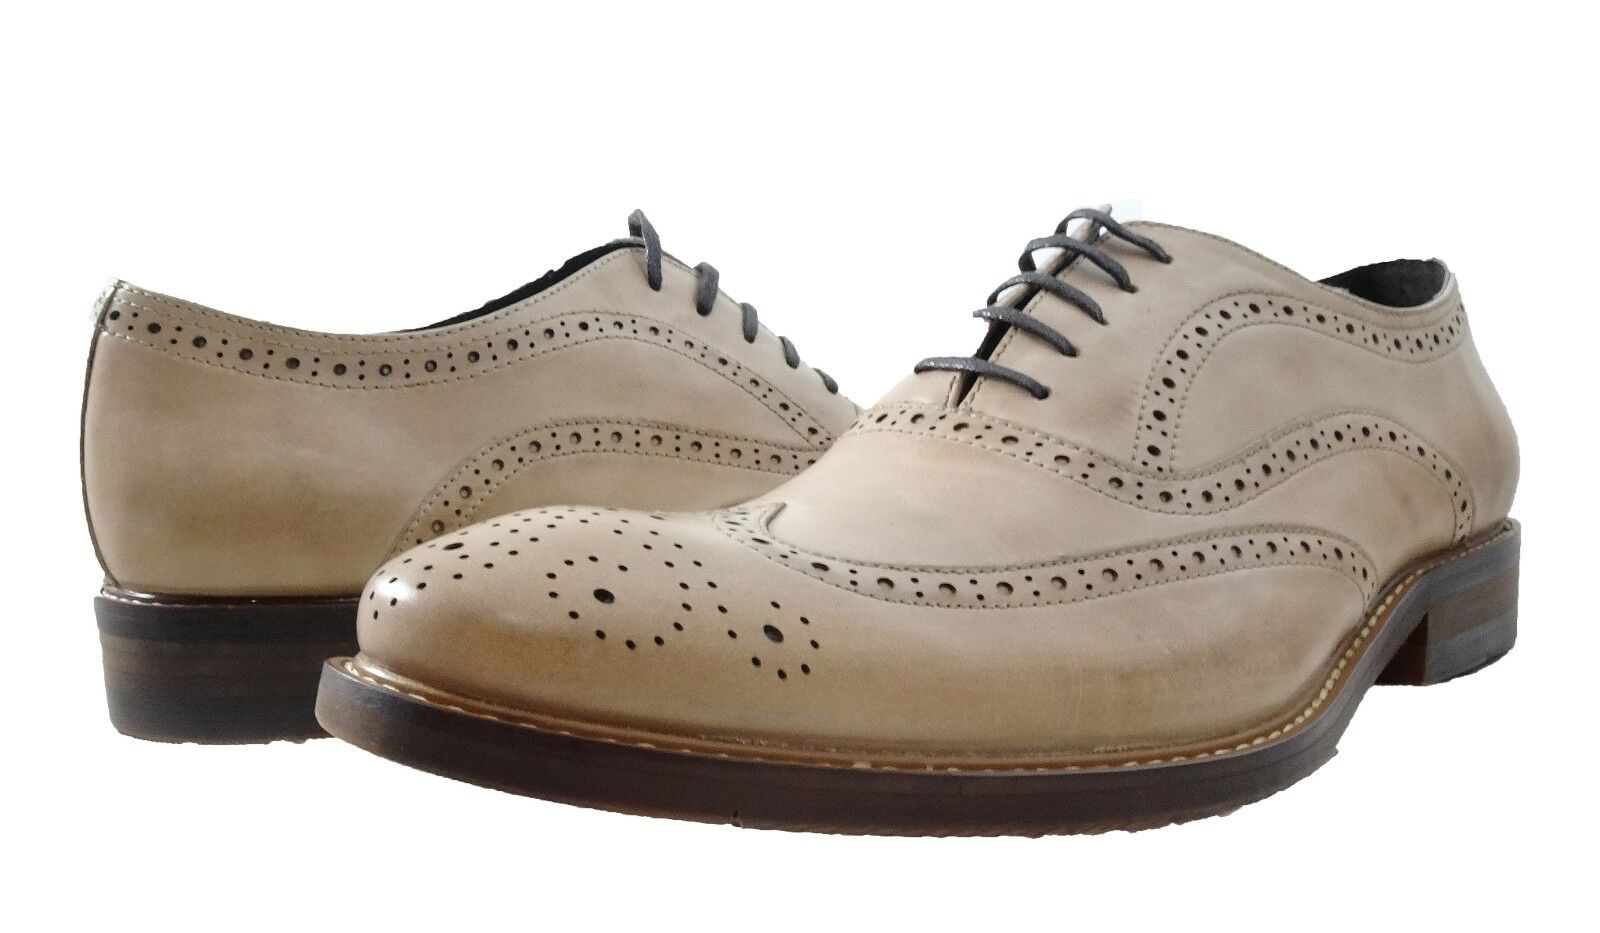 Kenneth Cole  Lace Uomo Roll The Dice Lace  Up Wingtip Business Casual Dress Schuhes 81da74